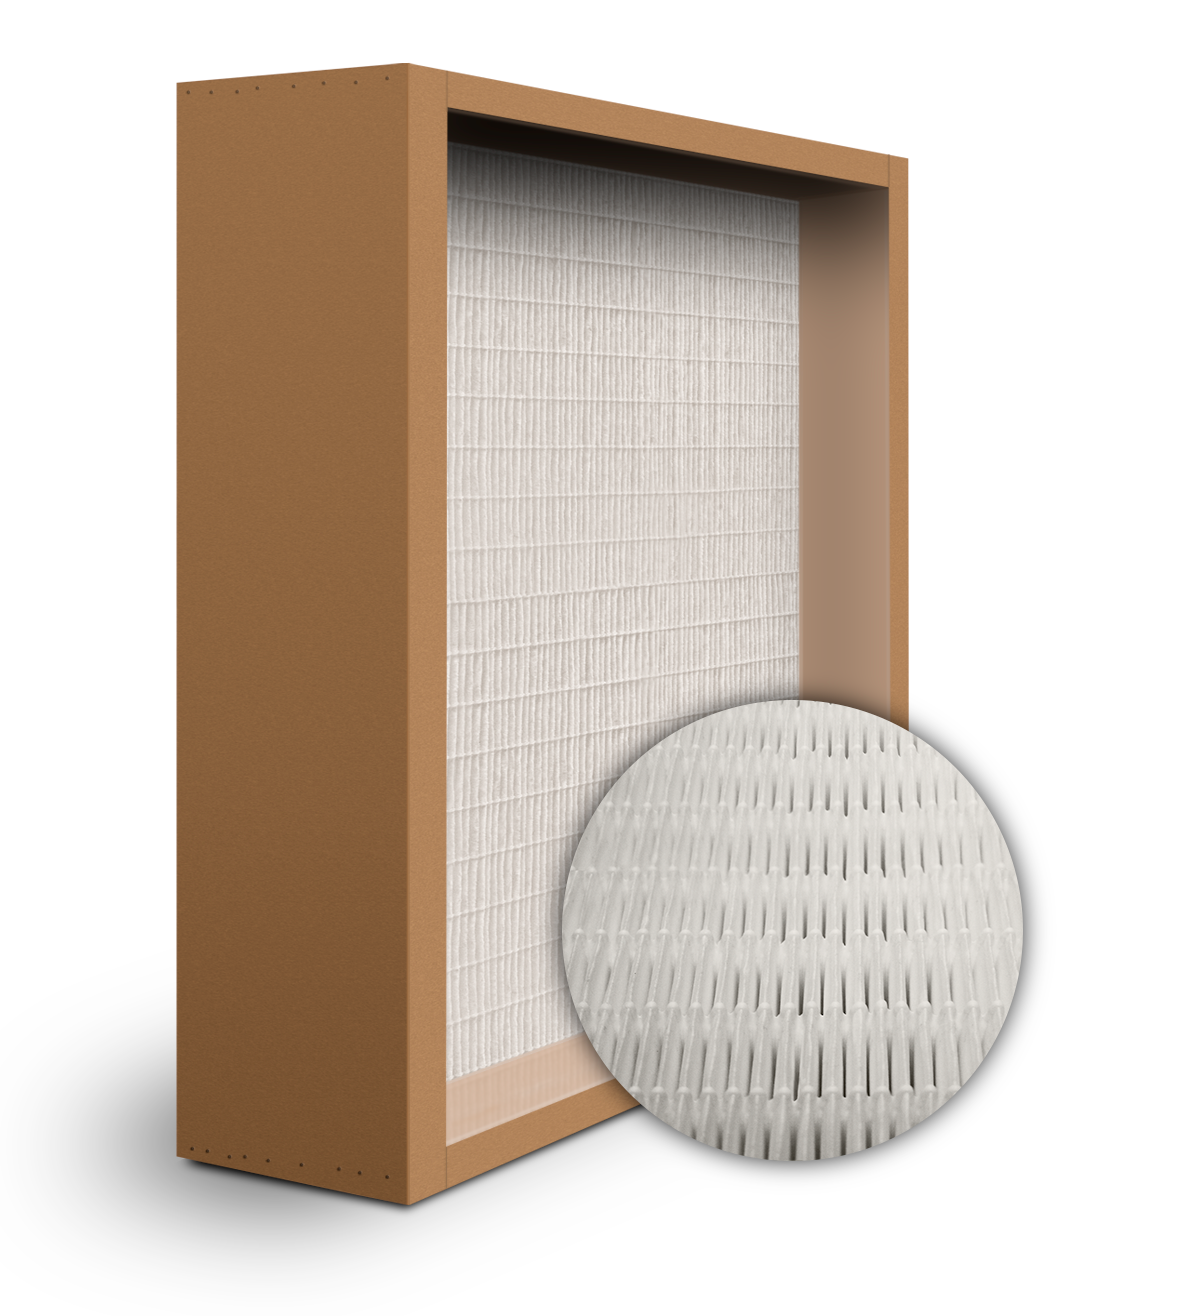 SuperFlo Max ASHRAE 95% (MERV 14/15) Particle Board Frame Mini Pleat Filter 20x20x6